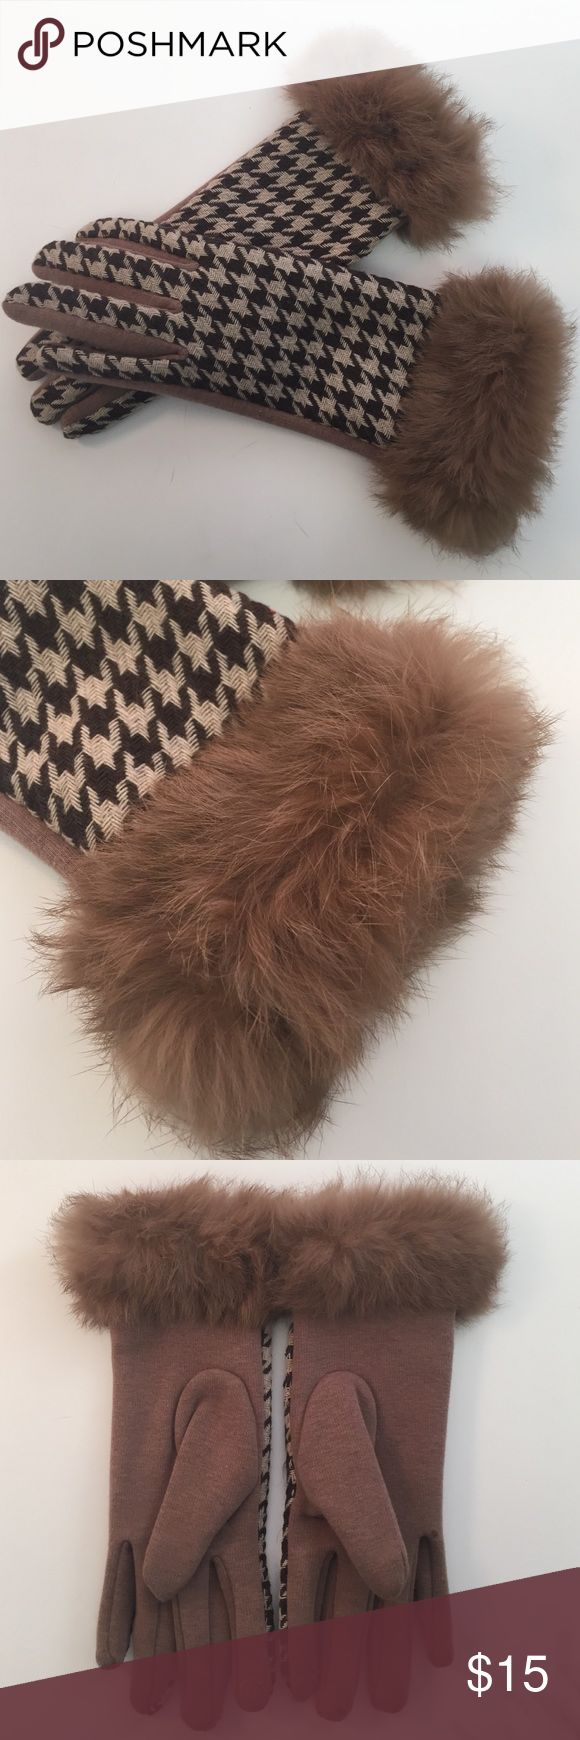 Driving texting gloves - Texting Gloves With Rabbit Fur